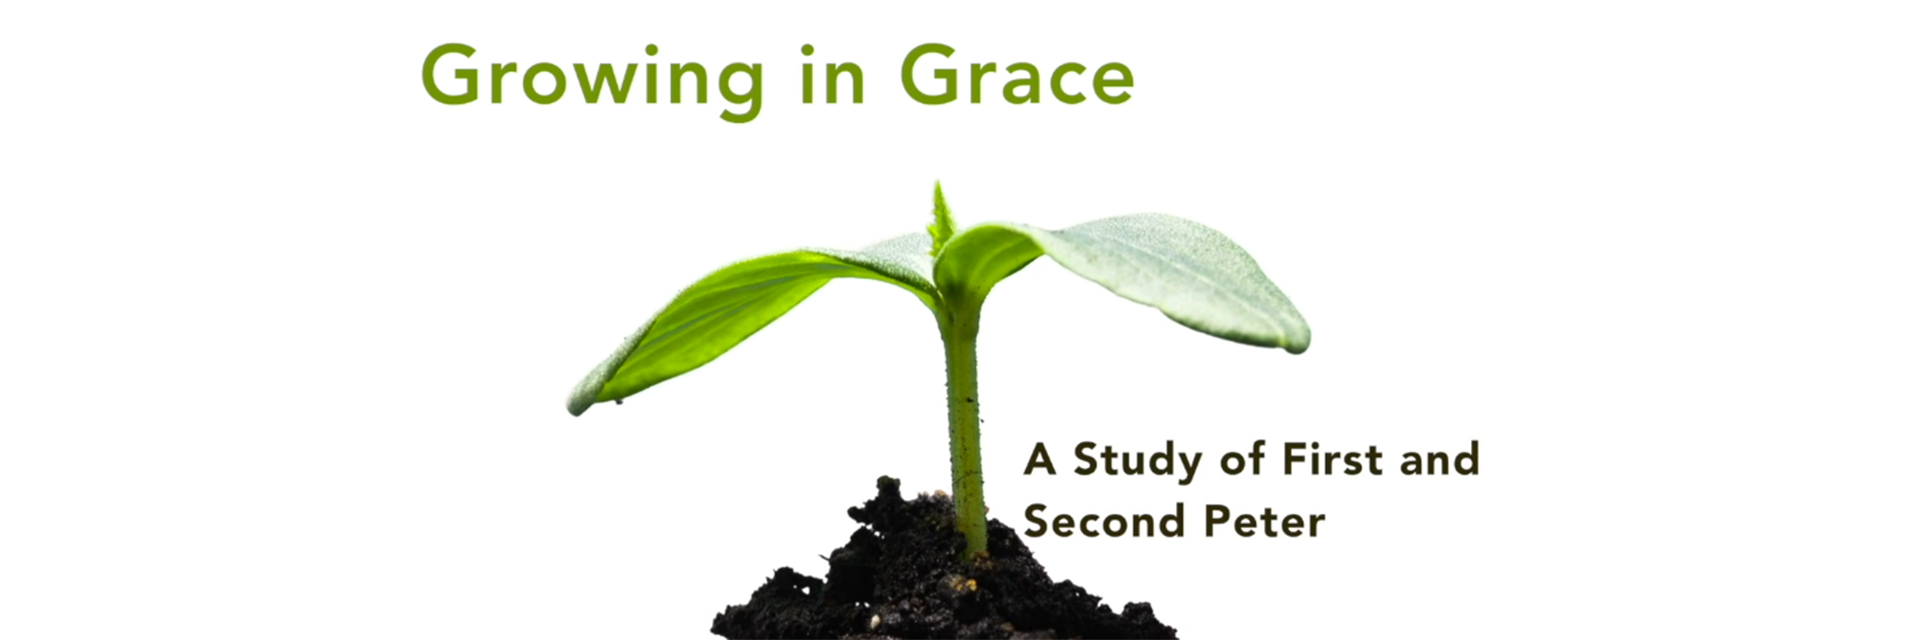 Growing in Grace.jpg